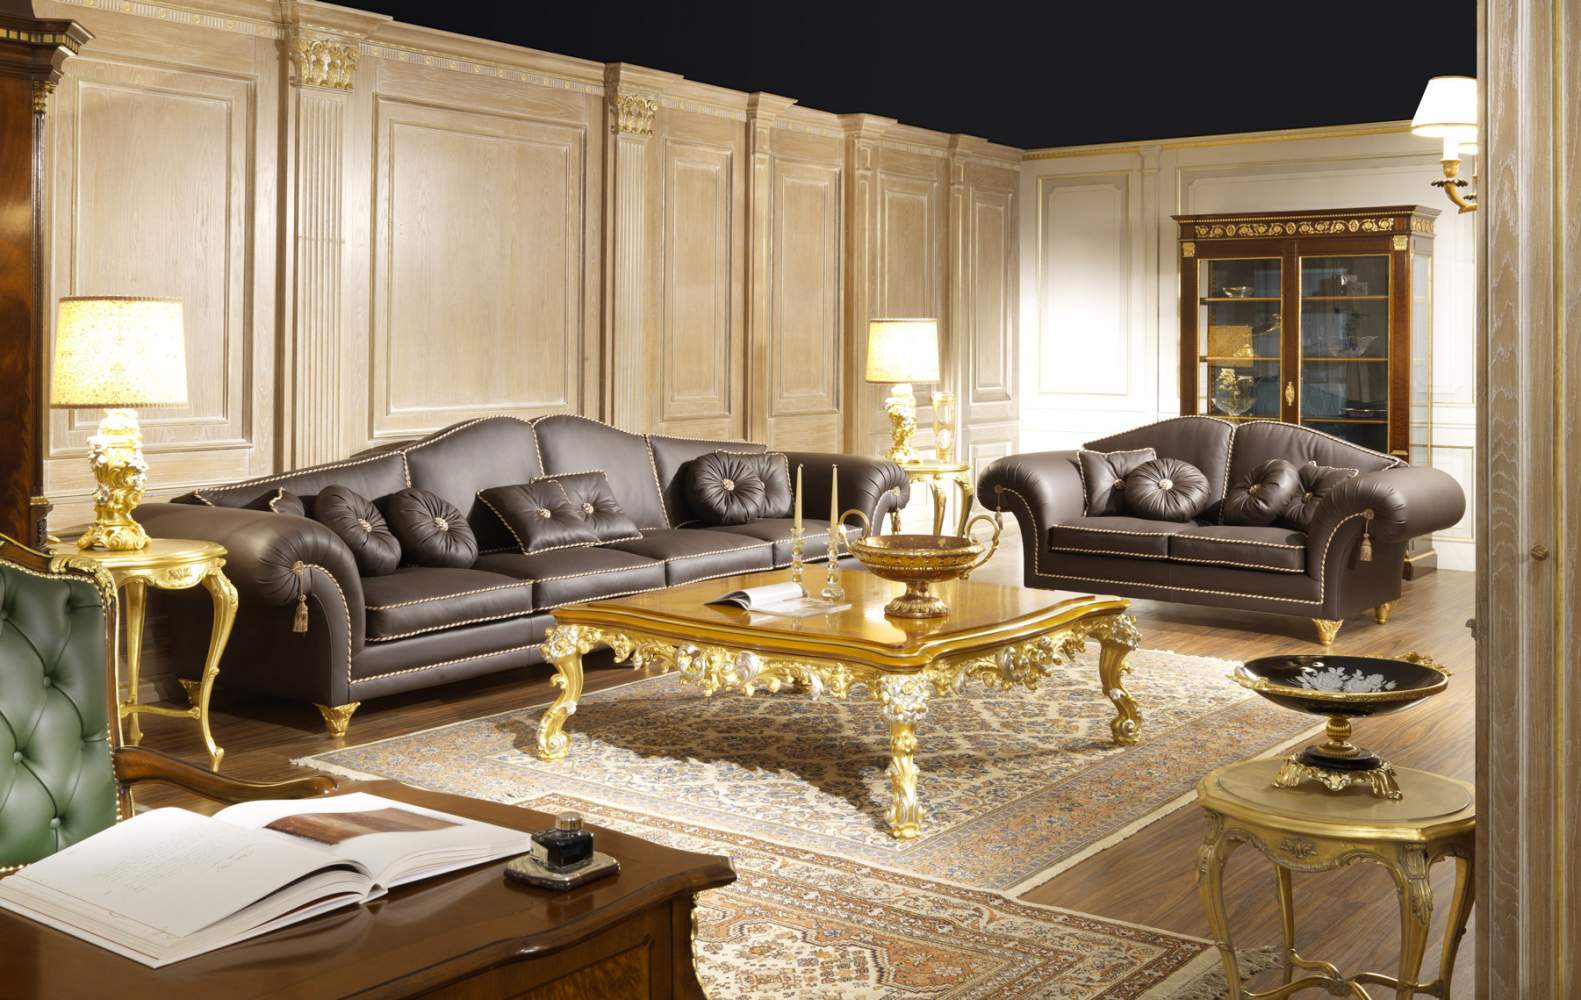 Luxury living room in leather majestic vimercati classic furniture for Living room luxury furniture